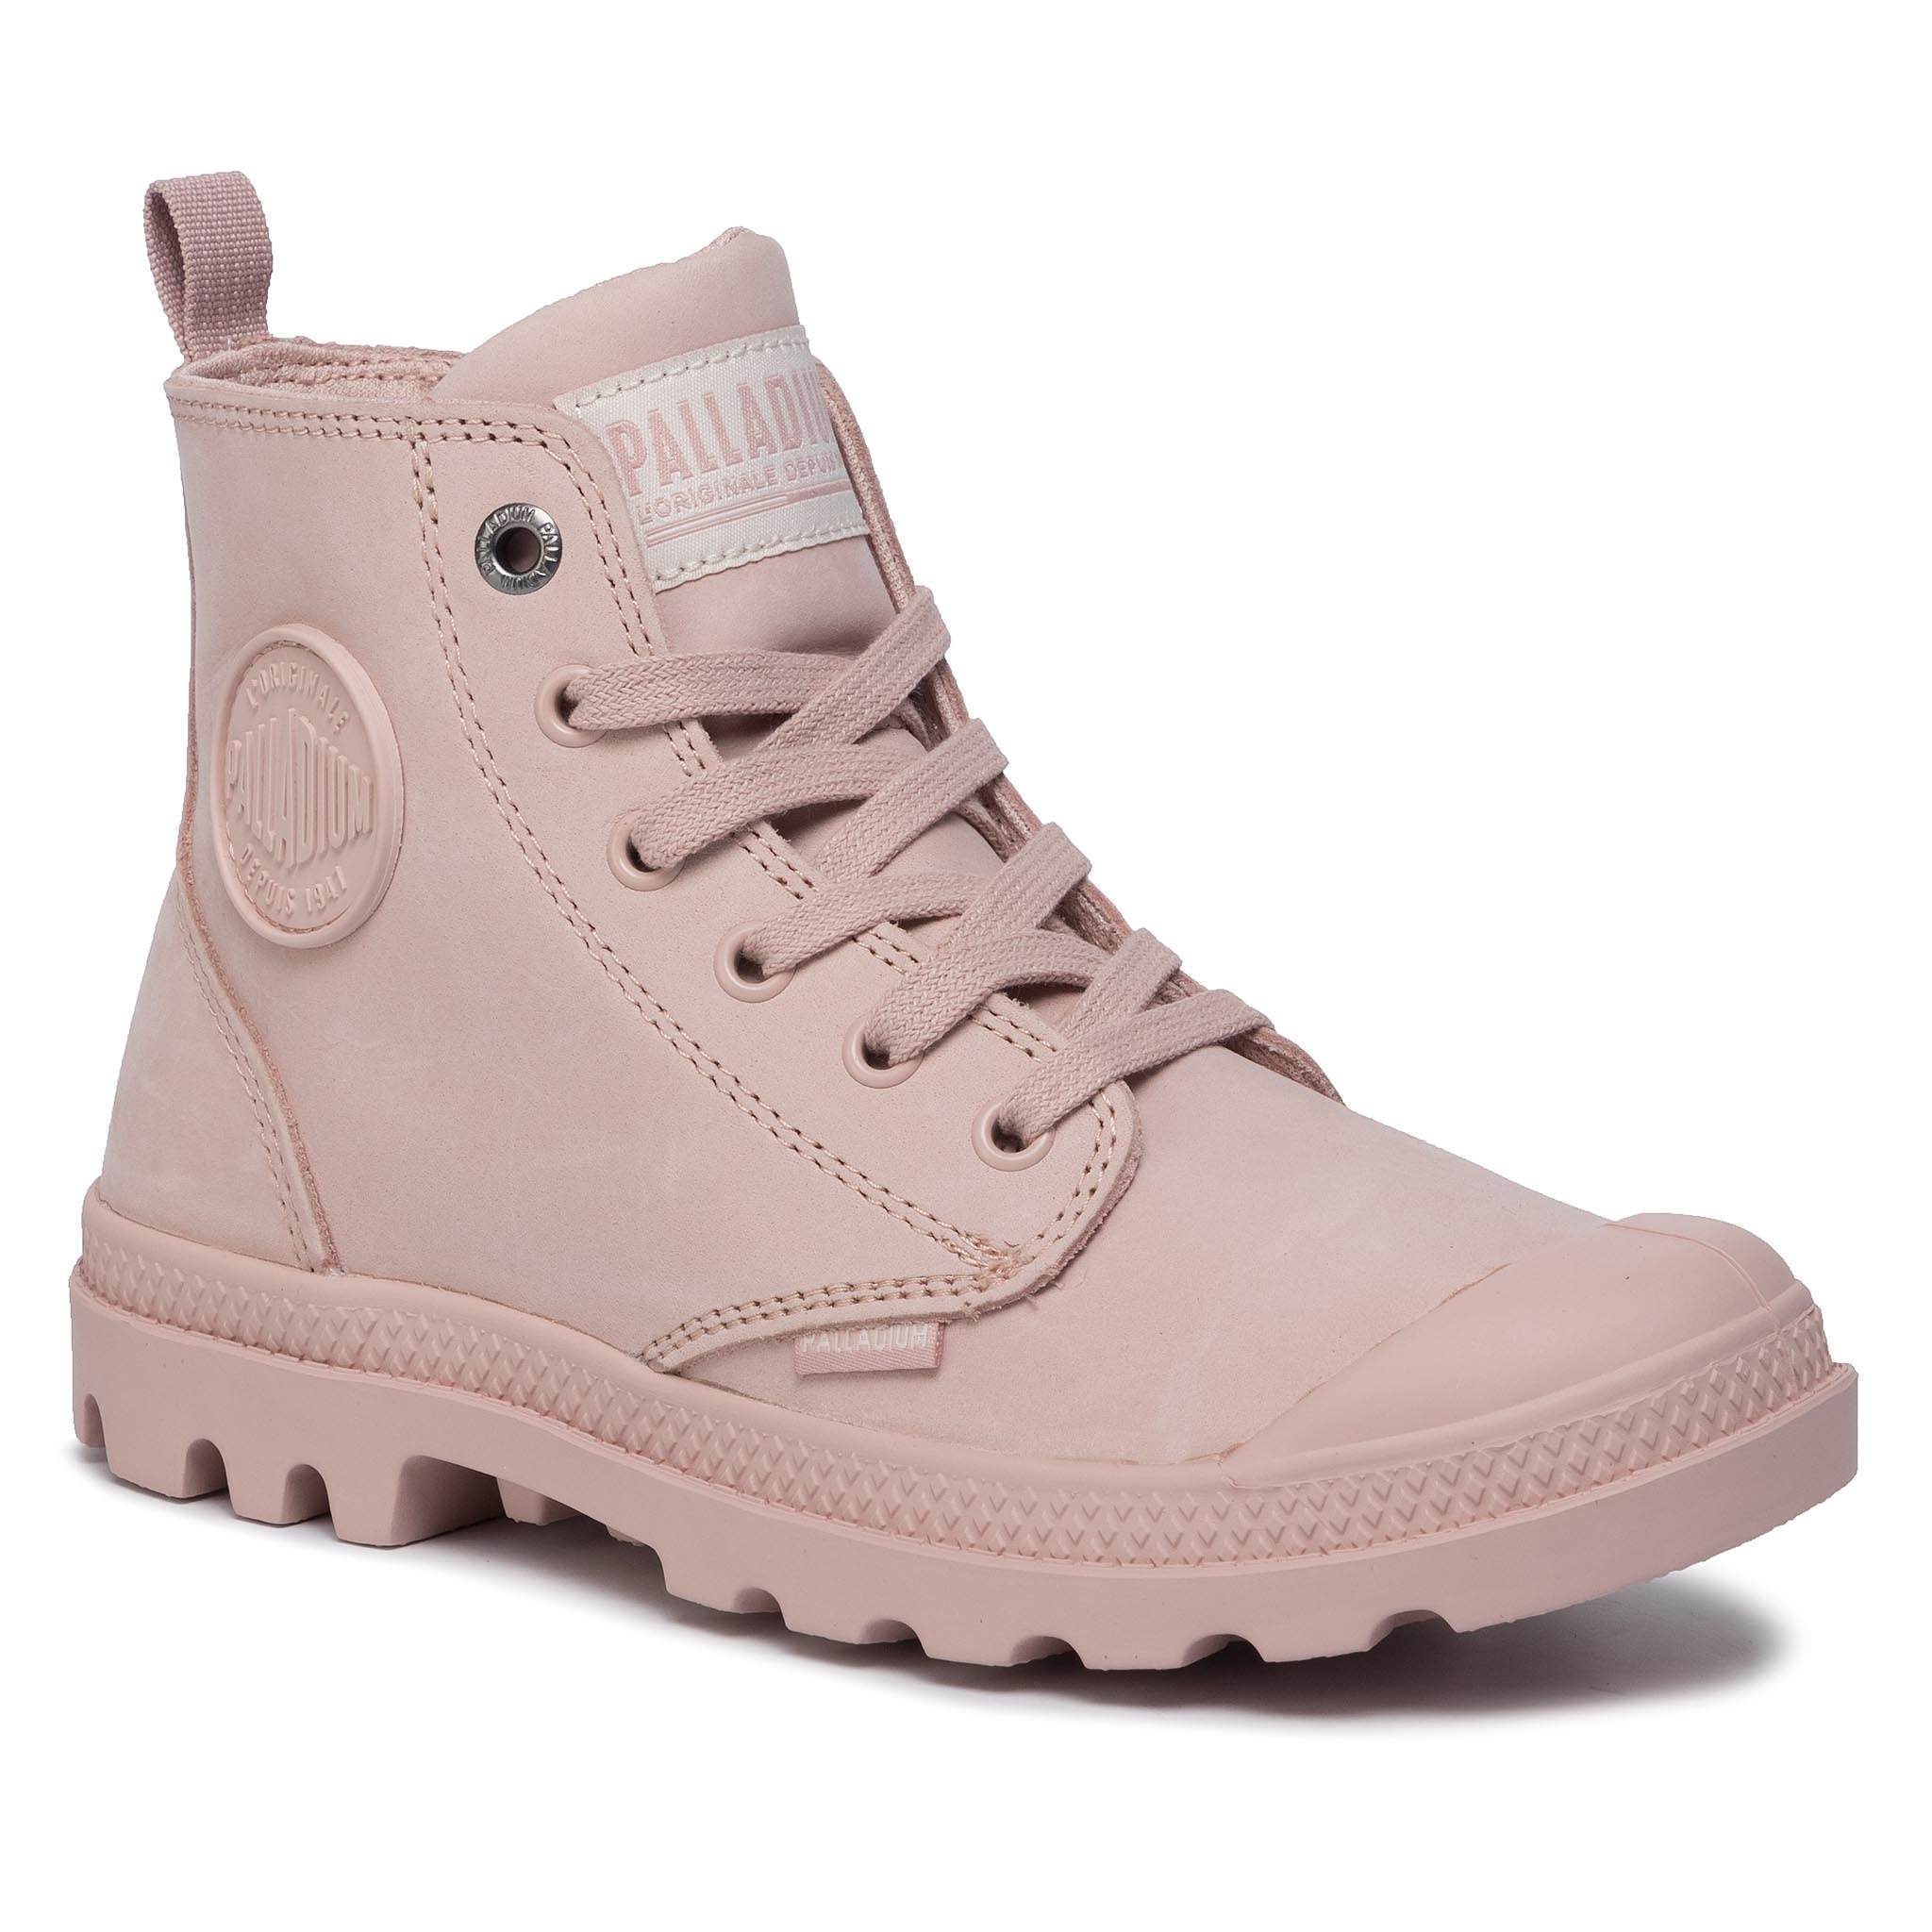 Trappers PALLADIUM - Pampa Hi Zip Nbk 96440-613-M Rose Smoke